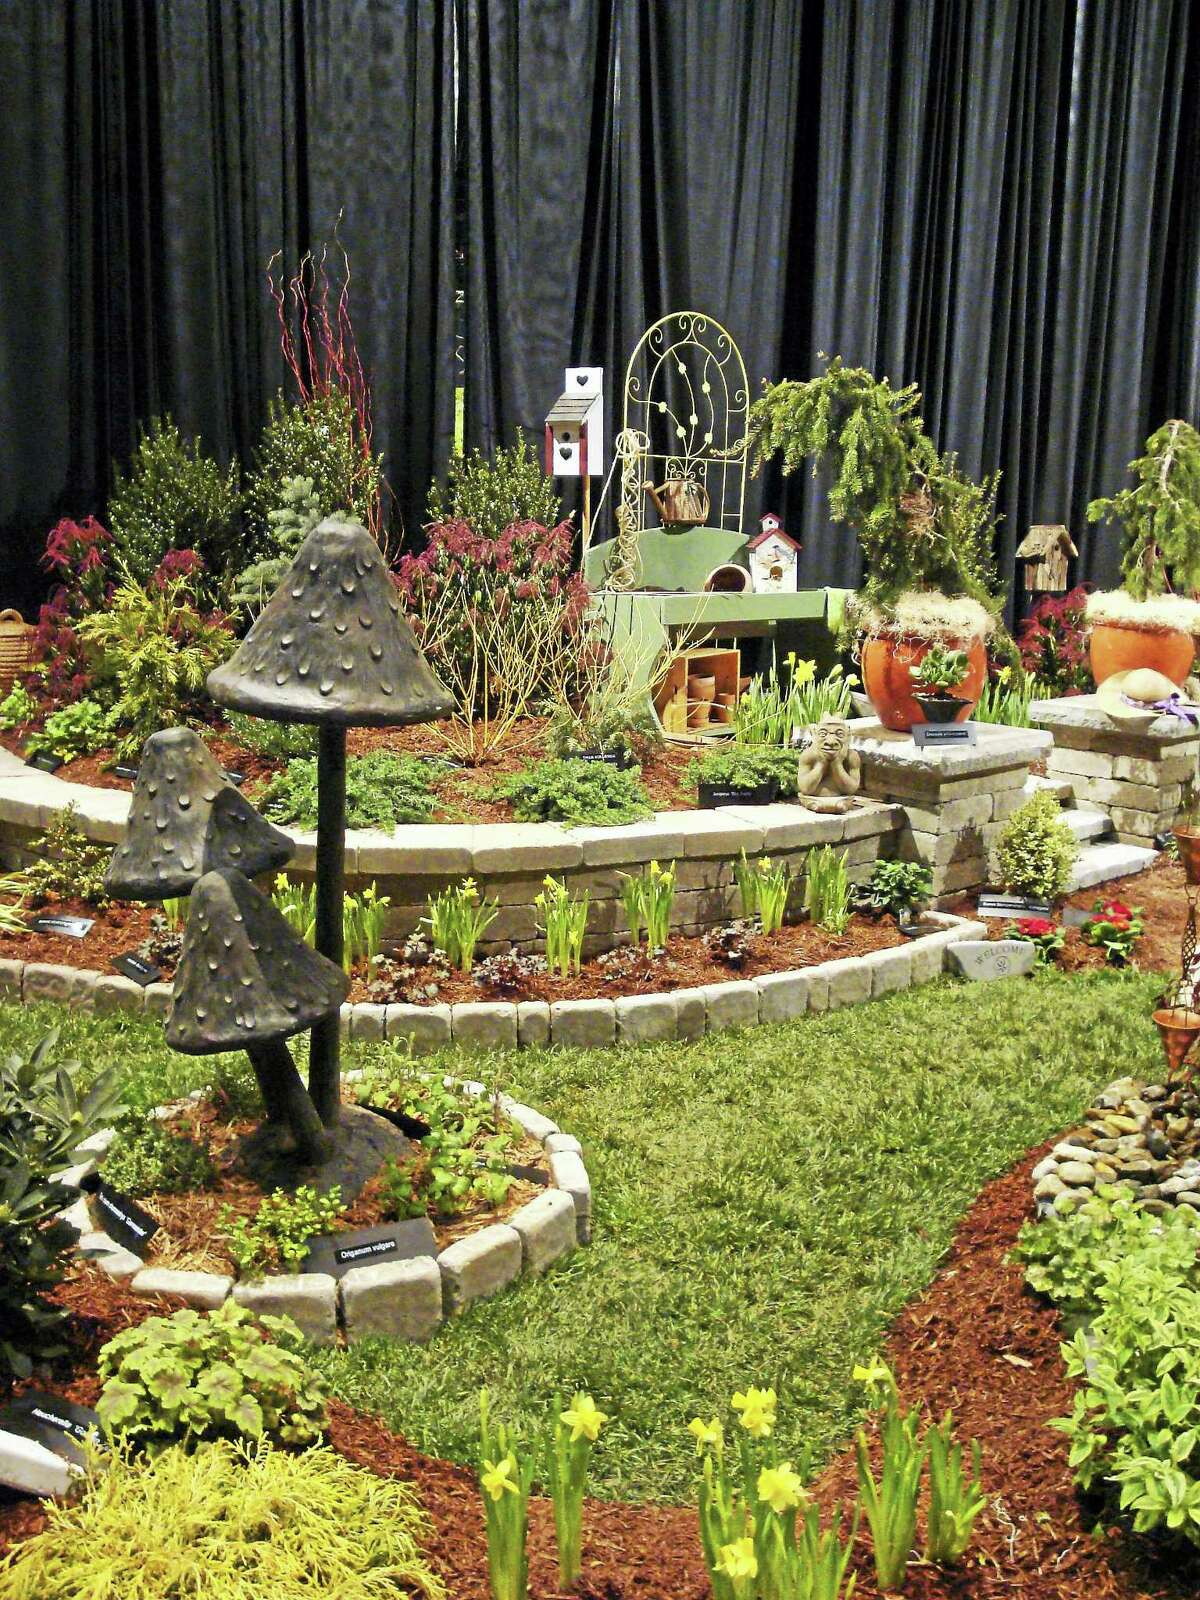 A garden display at last year's show.